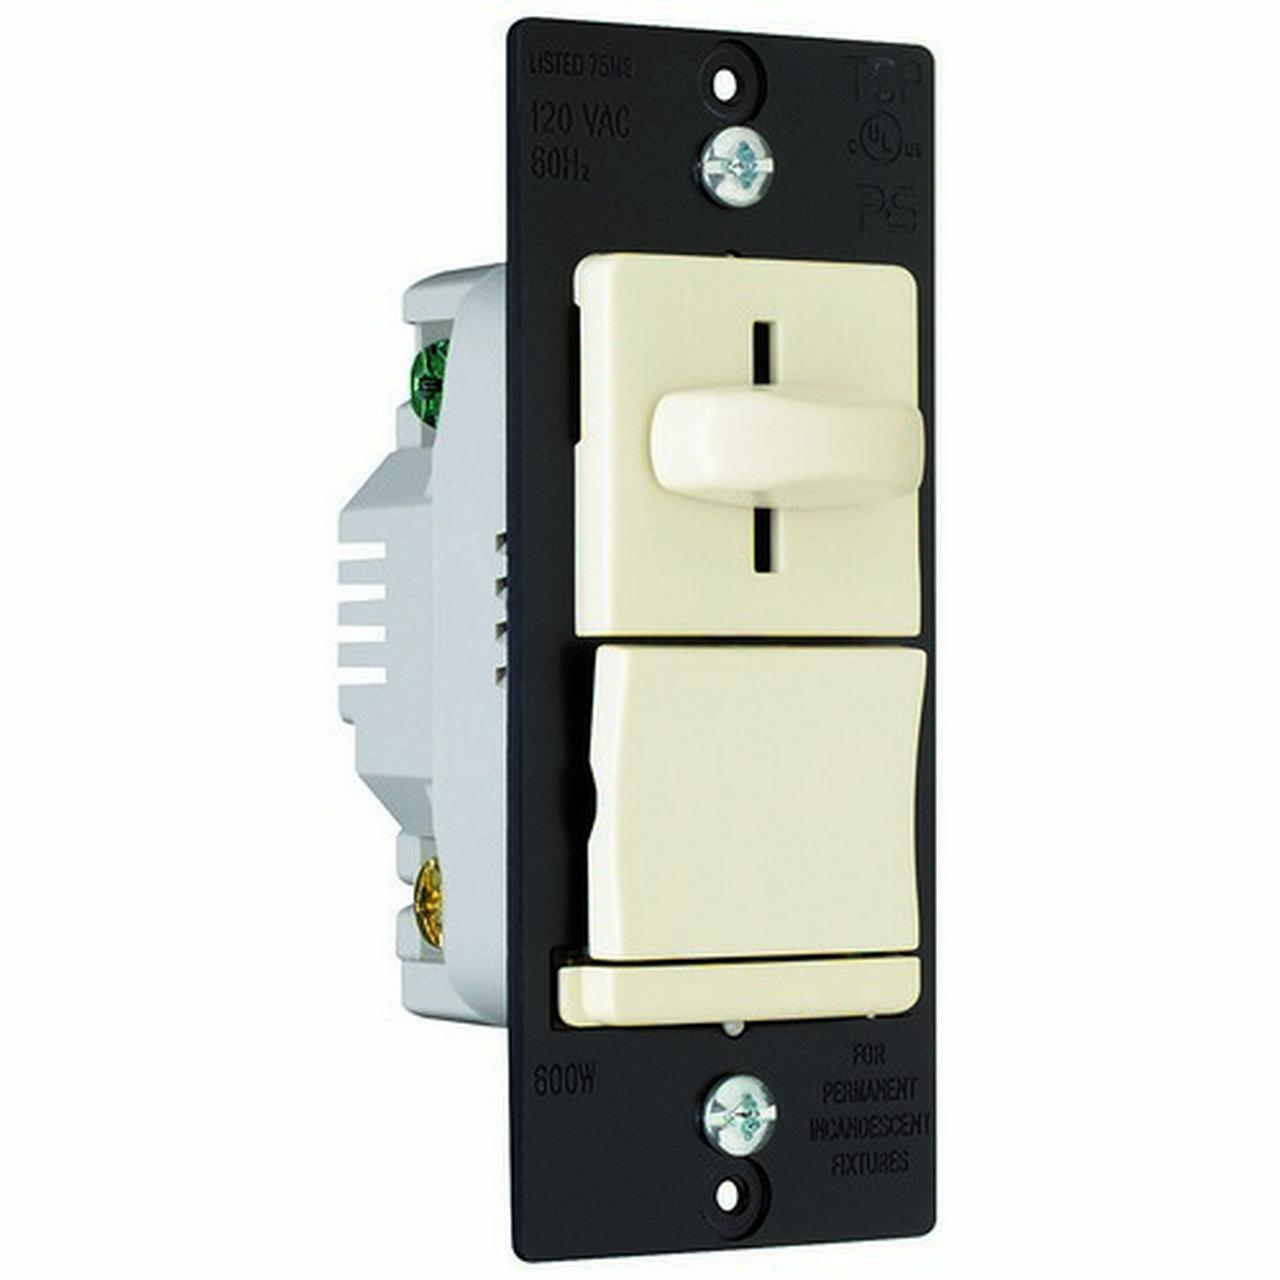 Pass & Seymour/Legrand Ls603Plav Dimmer Slide 3Way Ltalm